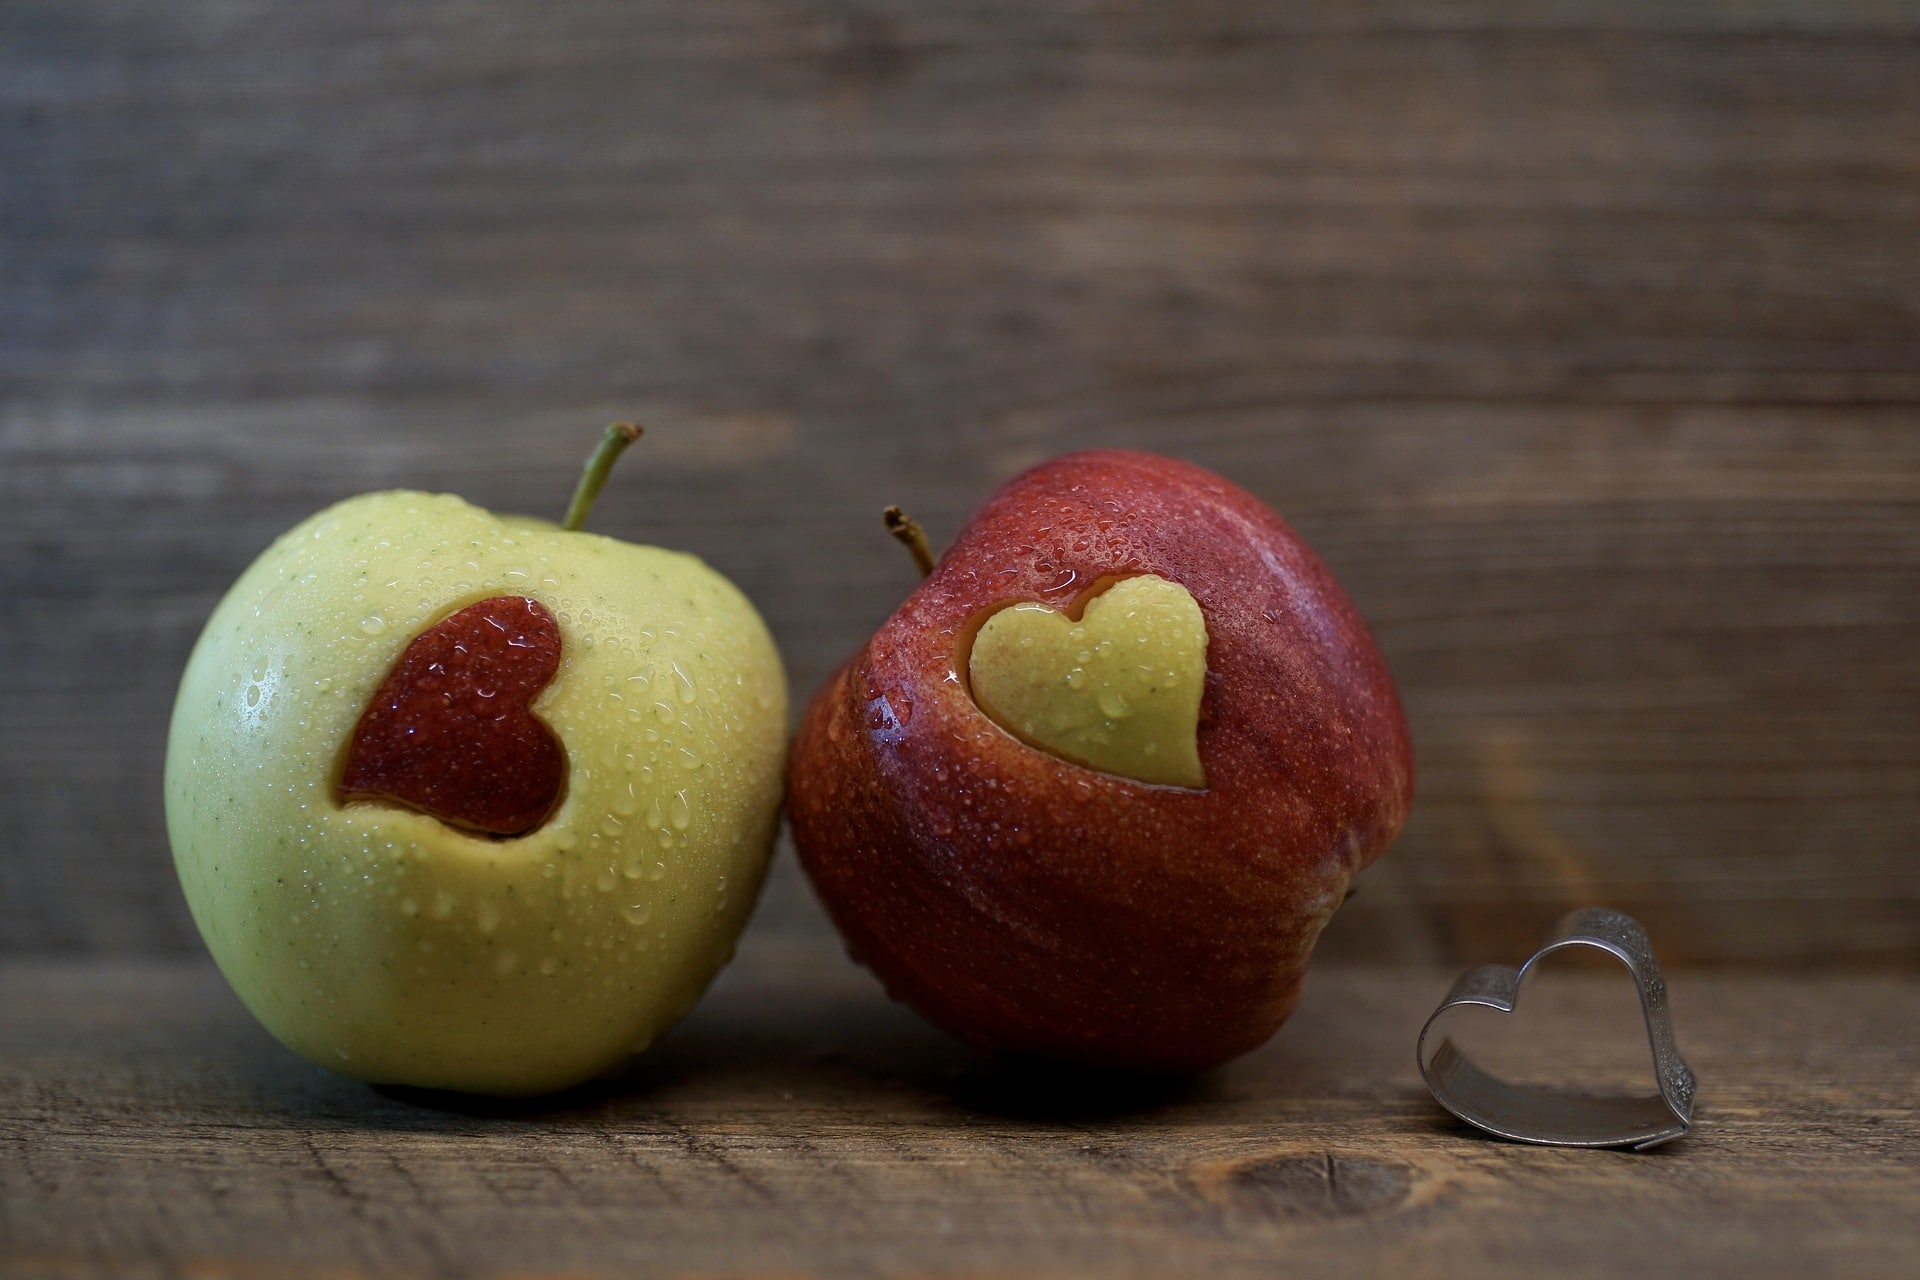 Photo of two apples with hearts cut out of them